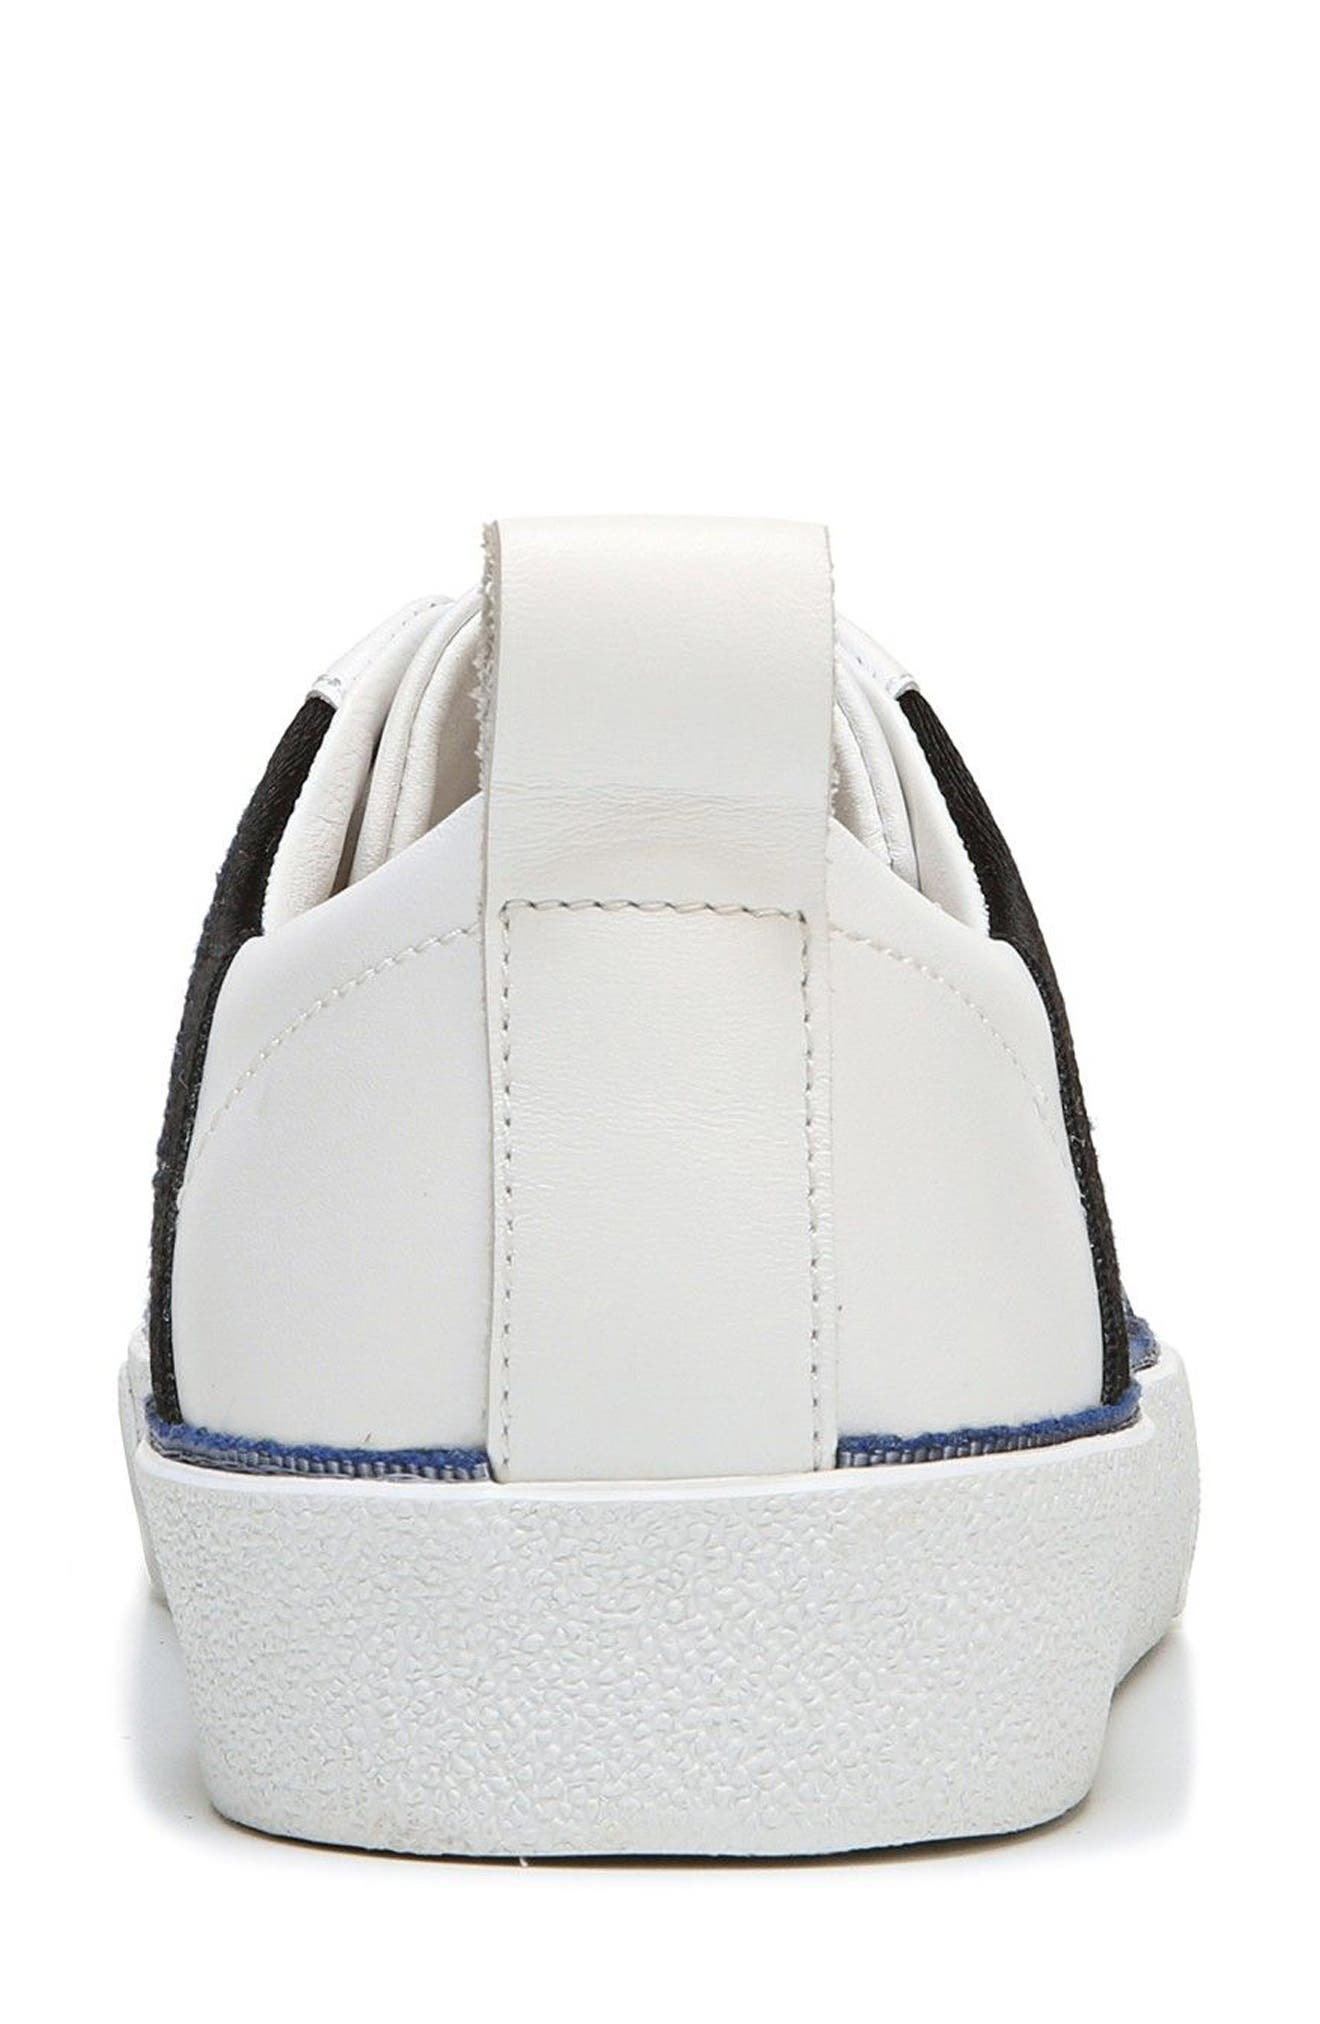 Tess Lace-Up Sneaker,                             Alternate thumbnail 2, color,                             WHITE/ LIPSTICK